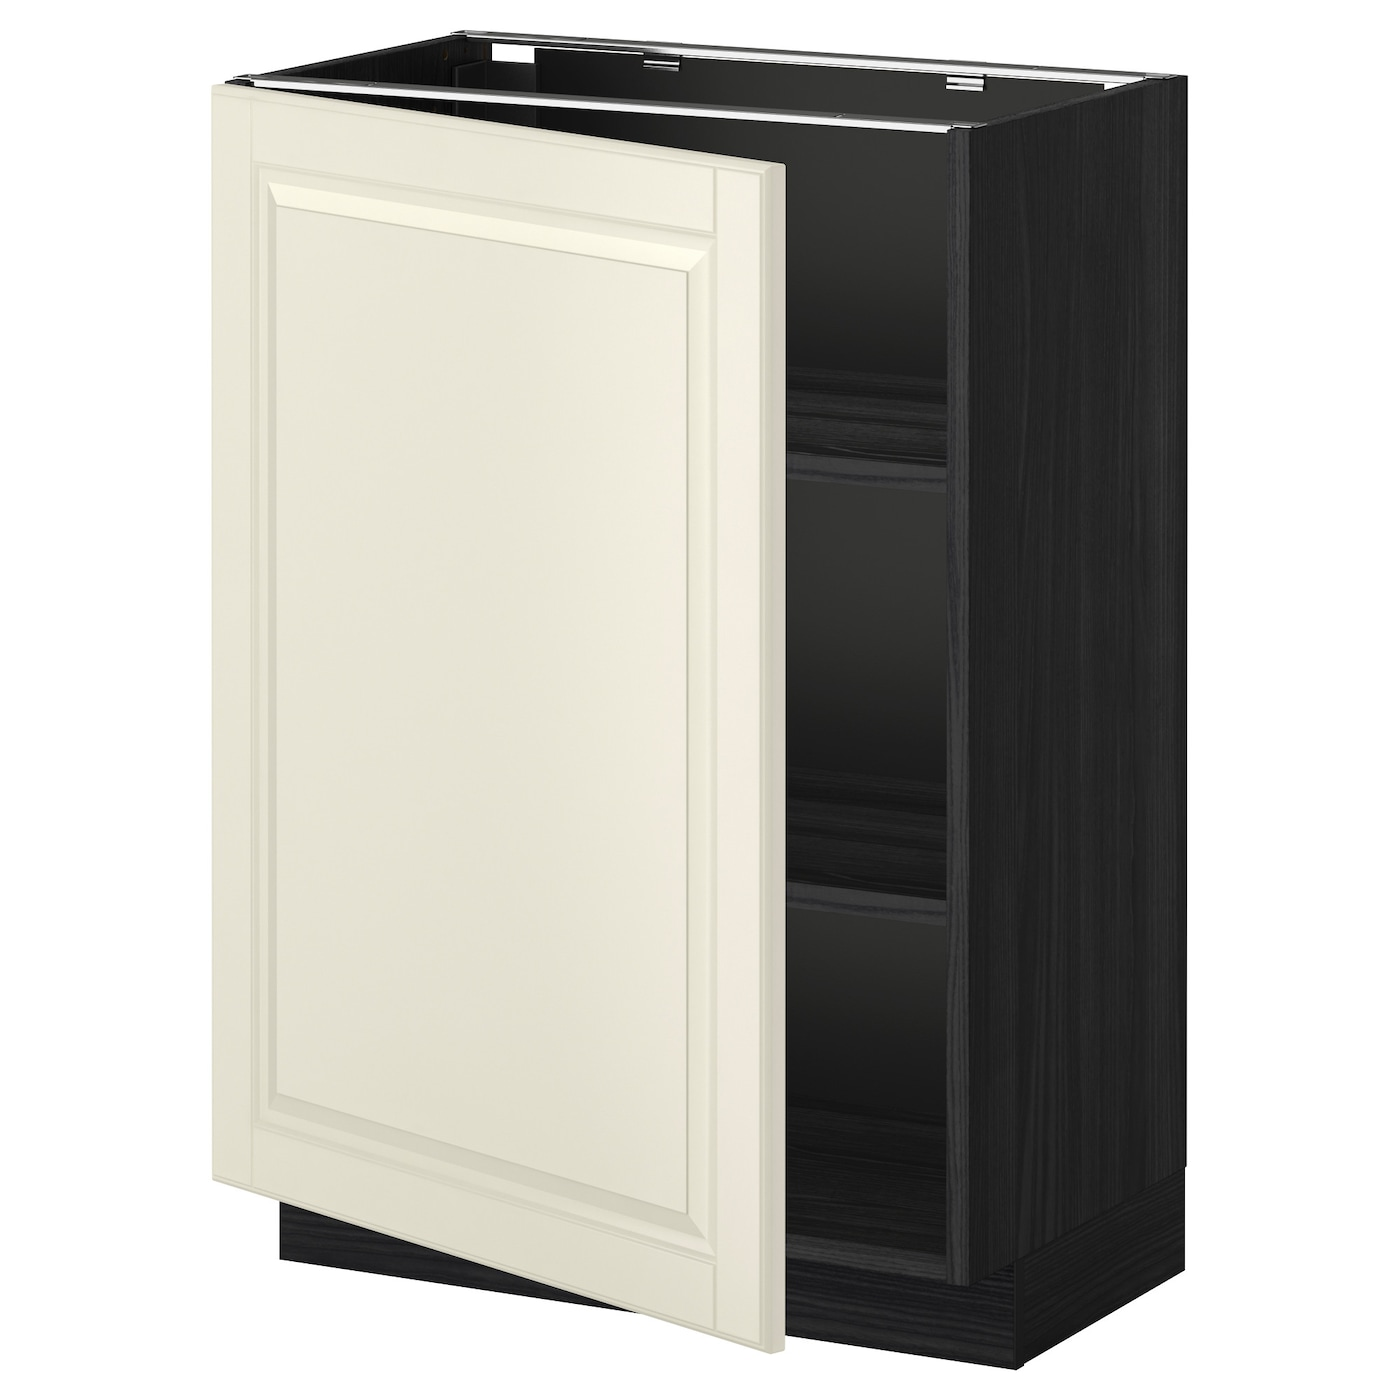 Metod base cabinet with shelves black bodbyn off white for Off the shelf cabinets